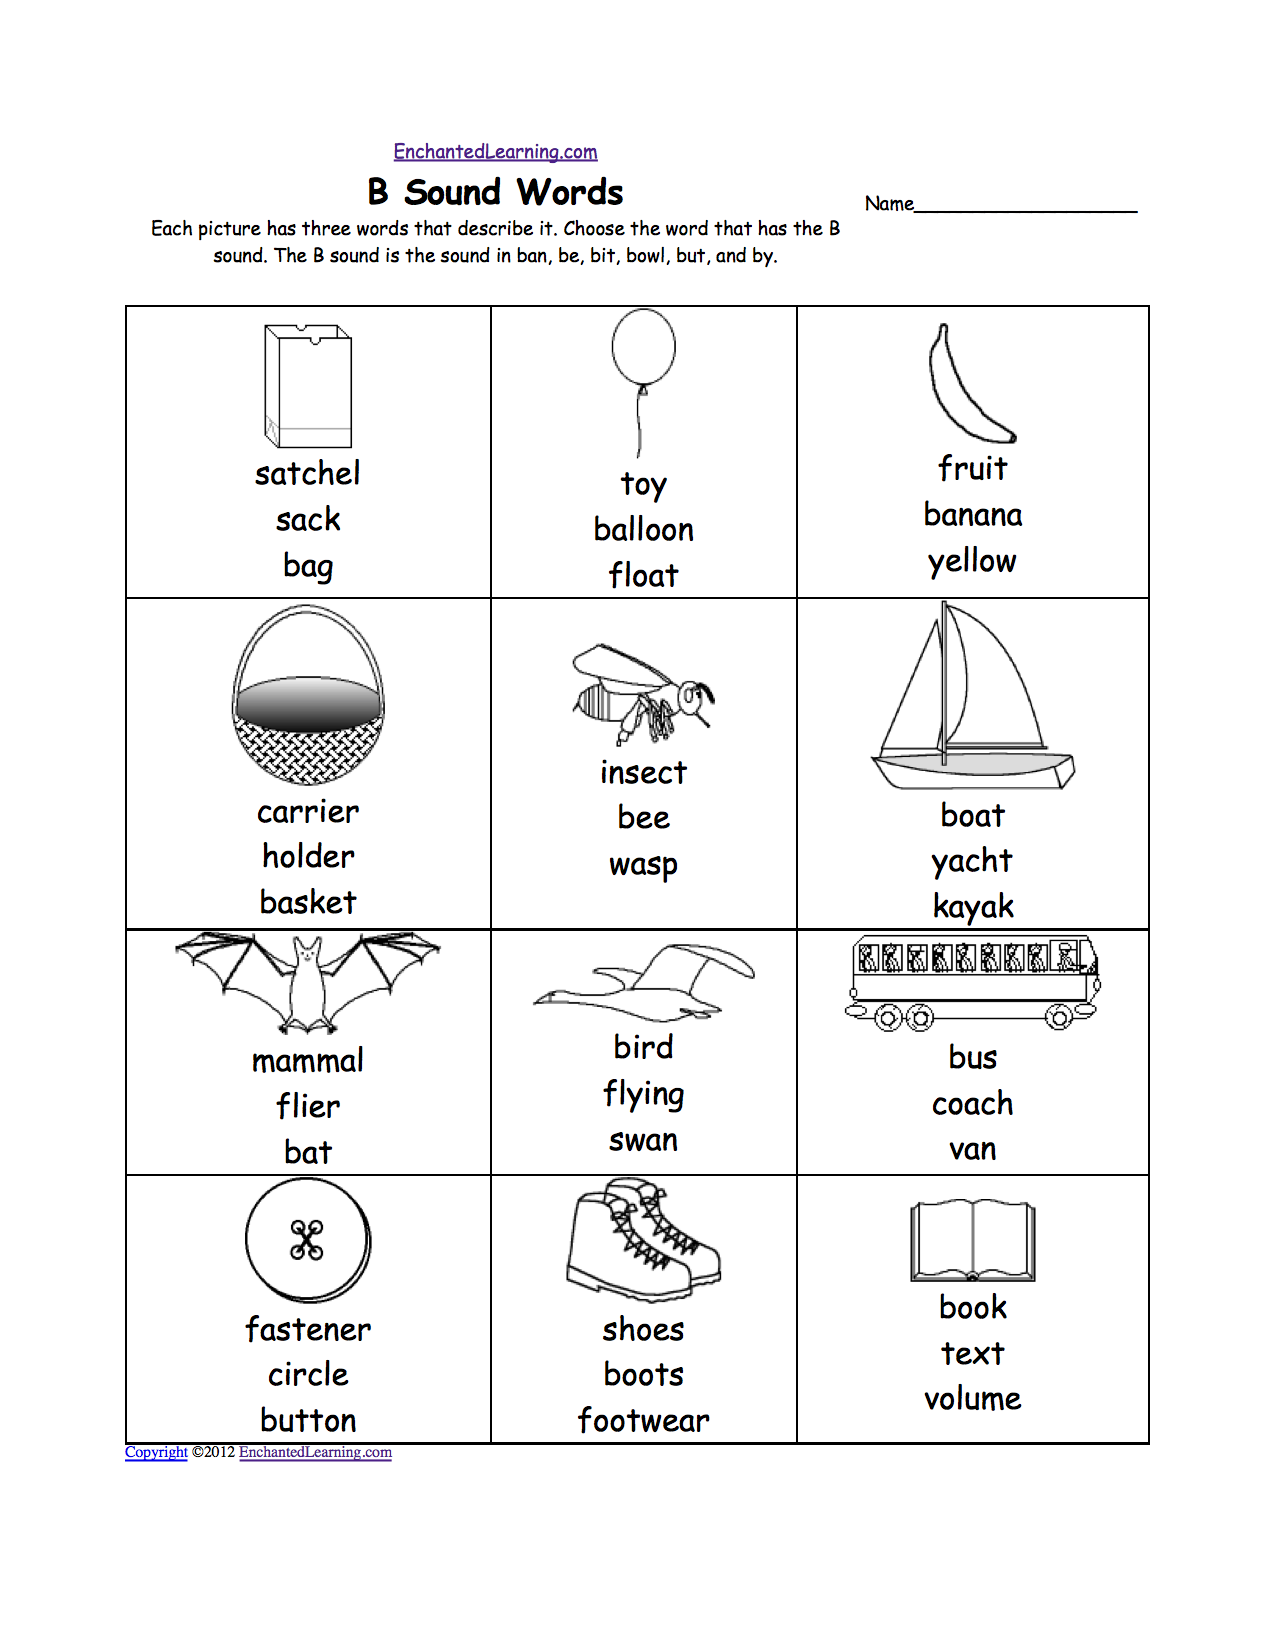 Aldiablosus  Personable Phonics Worksheets Multiple Choice Worksheets To Print  With Great Quotbquot Sound Phonics Worksheet Multiple Choice Each Picture Has Three Words That Describe It Choose The Word That Has A Quotbquot Sound The Quotbquot Sound Is The Sound  With Divine Pompeii Worksheets Also Color By Word Worksheet In Addition Worksheet On Area And Perimeter And Worksheets For Algebra As Well As Plot Worksheets Nd Grade Additionally Changing Metric Units Worksheet From Enchantedlearningcom With Aldiablosus  Great Phonics Worksheets Multiple Choice Worksheets To Print  With Divine Quotbquot Sound Phonics Worksheet Multiple Choice Each Picture Has Three Words That Describe It Choose The Word That Has A Quotbquot Sound The Quotbquot Sound Is The Sound  And Personable Pompeii Worksheets Also Color By Word Worksheet In Addition Worksheet On Area And Perimeter From Enchantedlearningcom